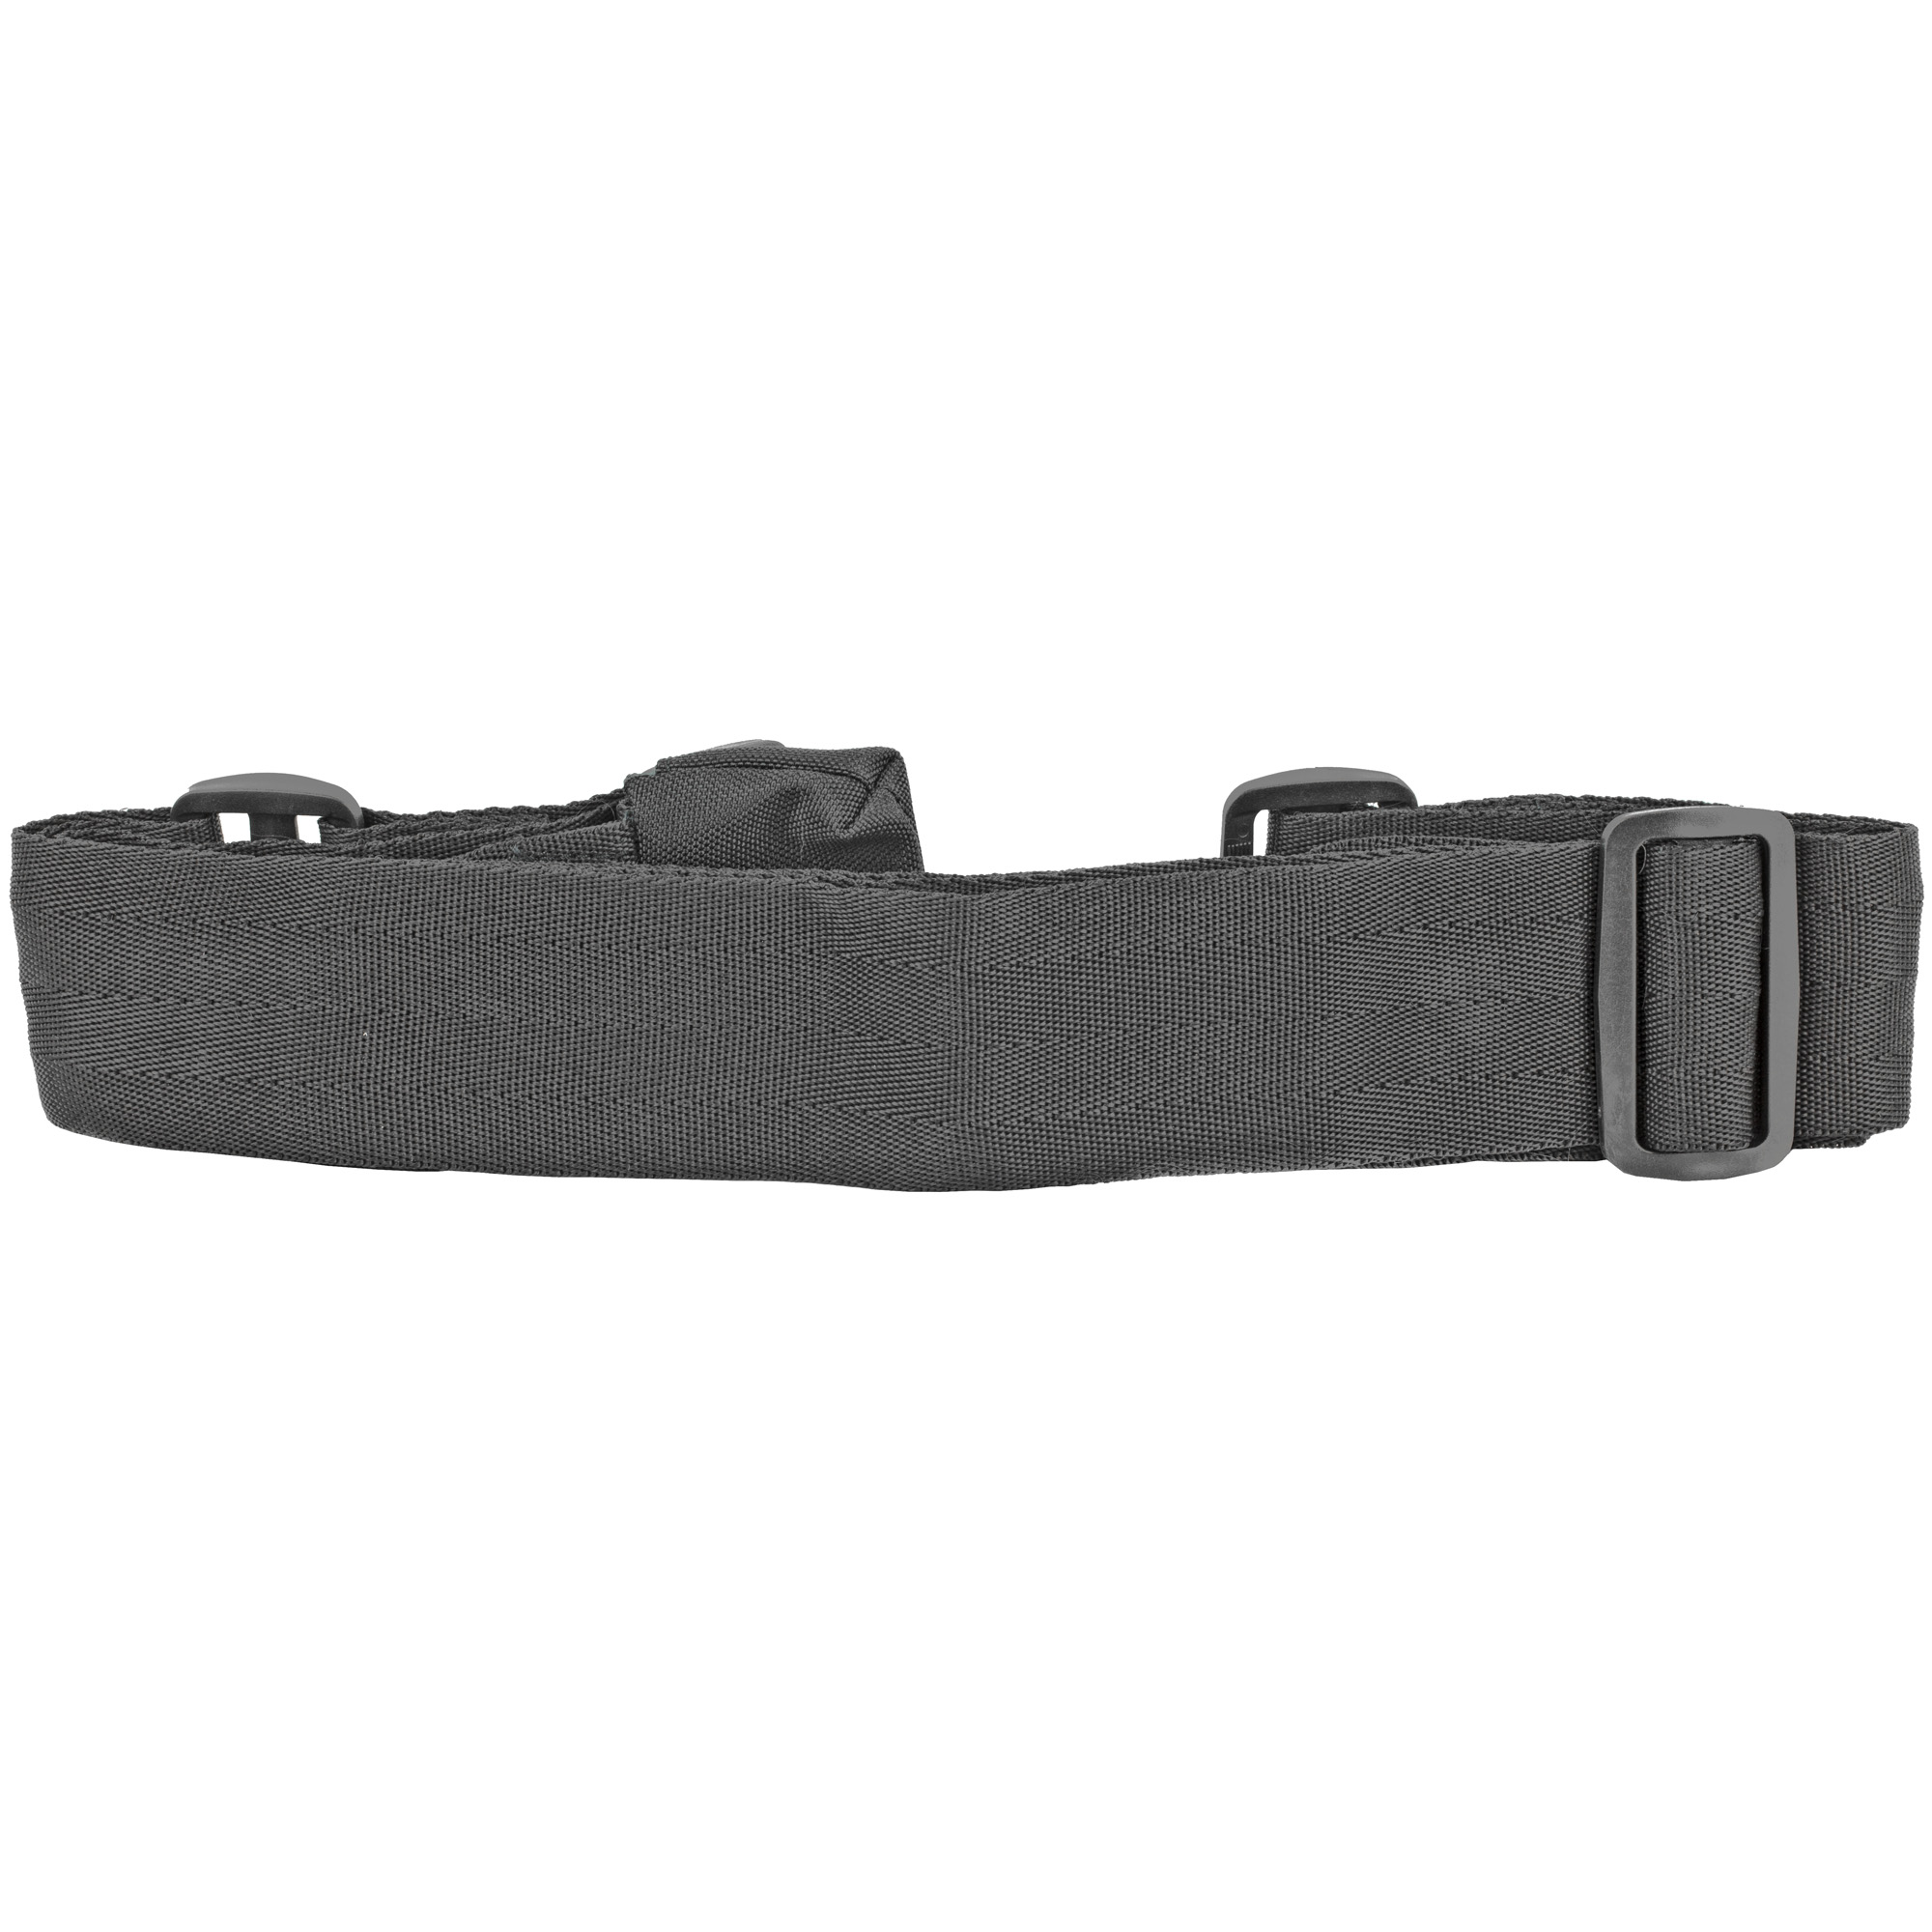 FAB Defense SL-1 Tactical Rifle Sling 3 Carry Modes Nylon Black